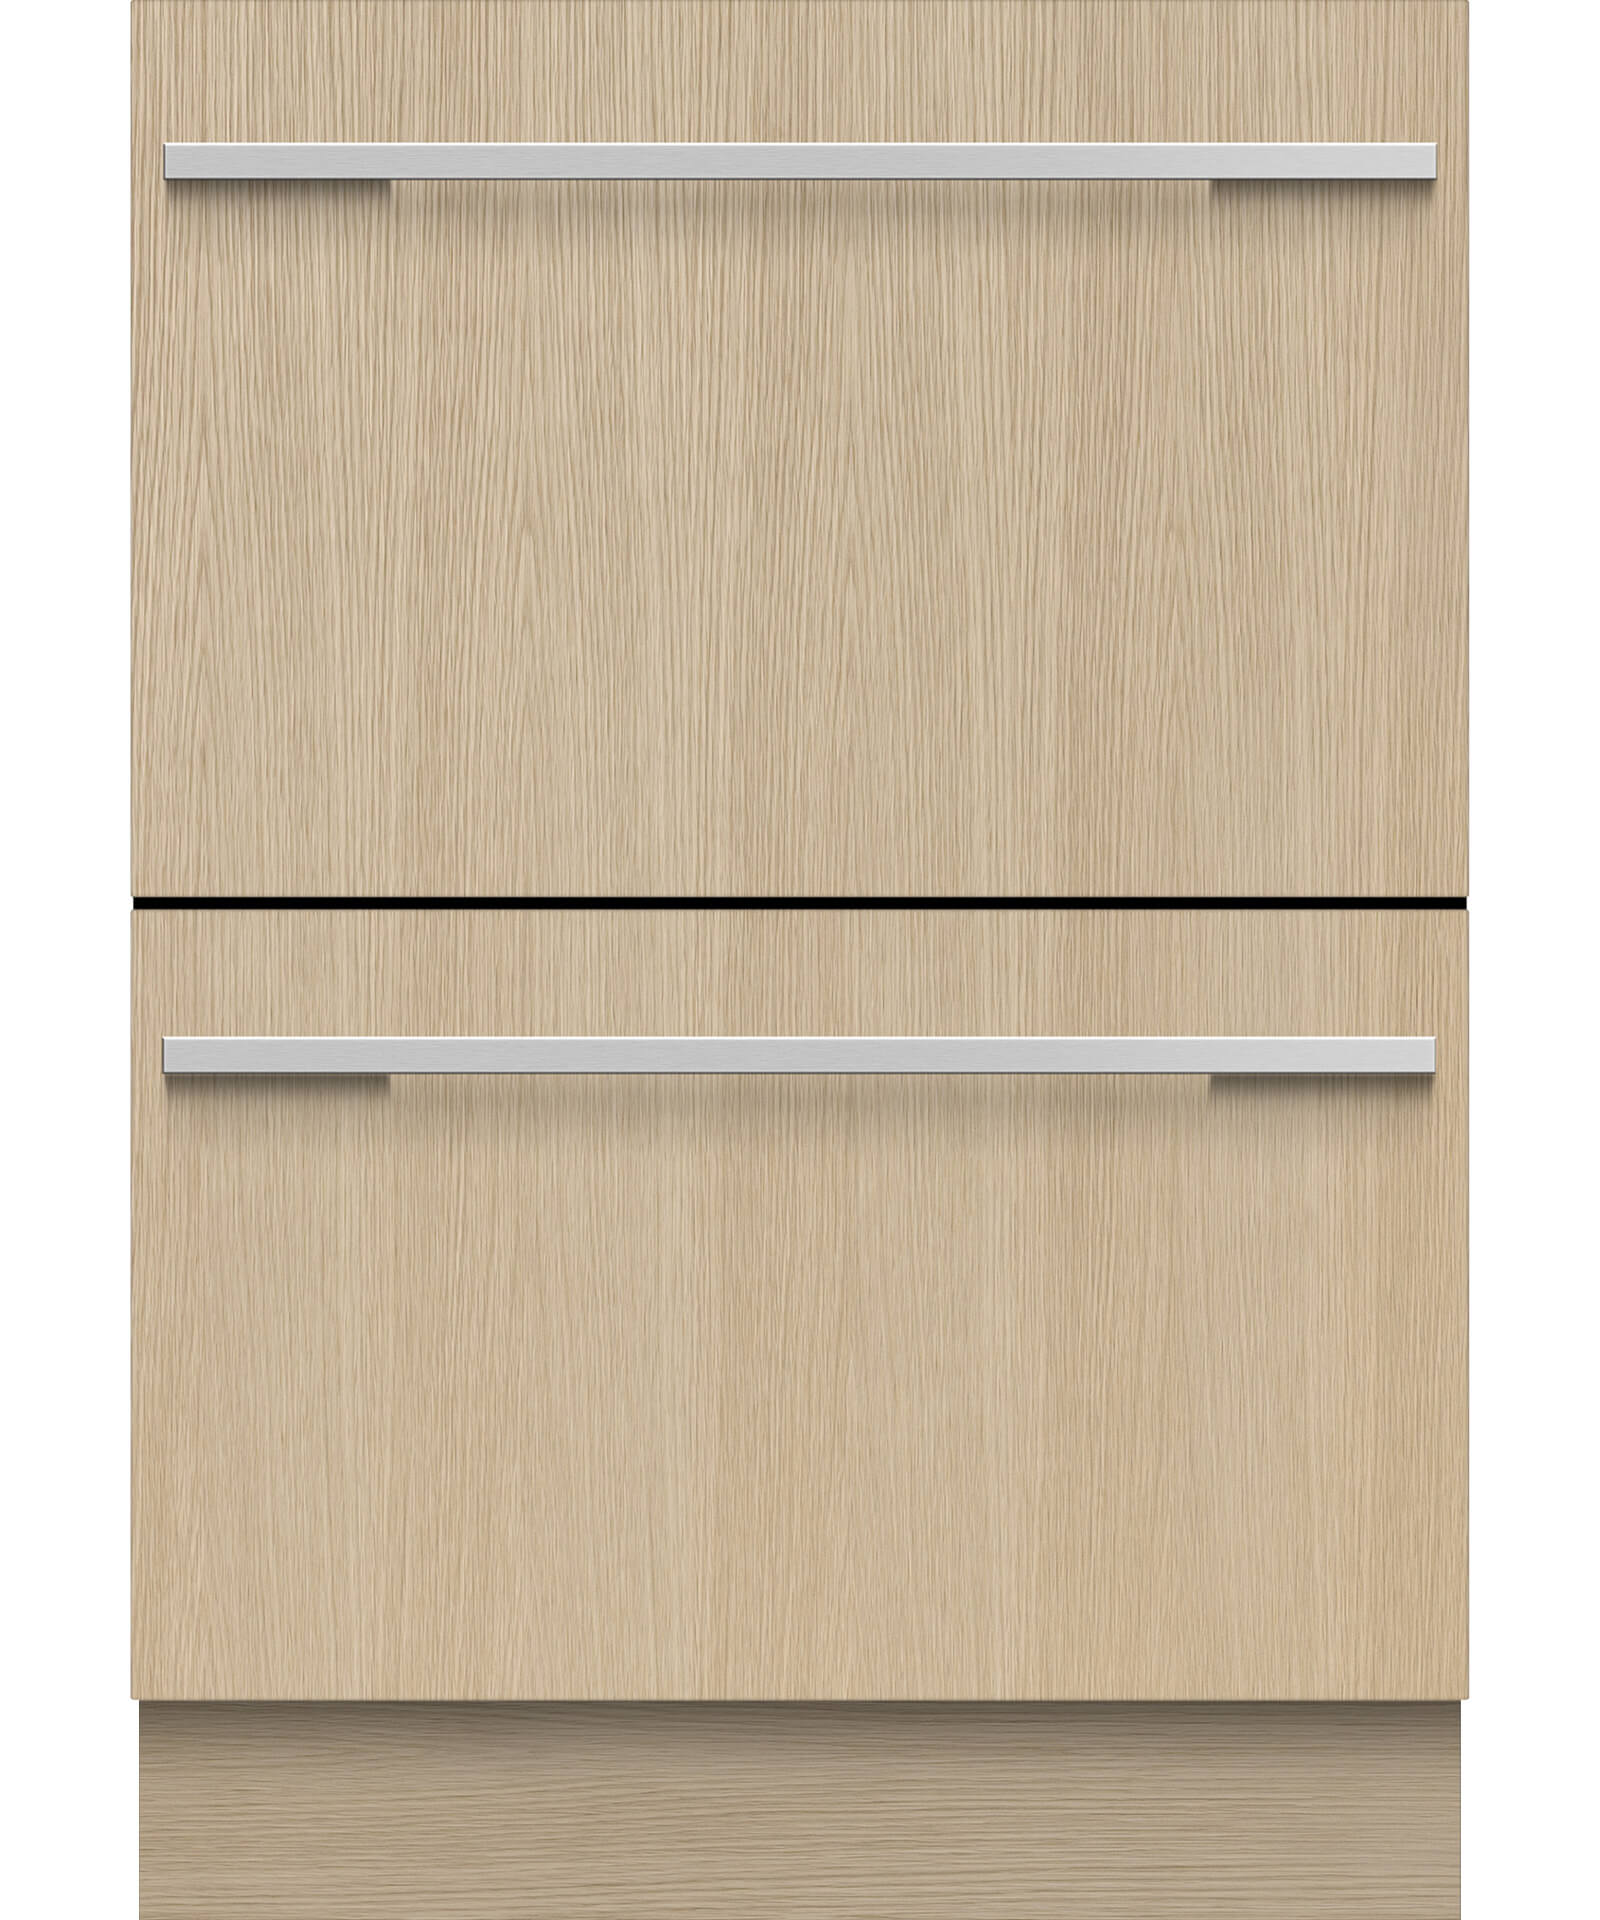 DD24DI9_N - Panel Ready Double DishDrawer™ Dishwasher incl Sanitize, Extra Dry and full flex racking - 81218